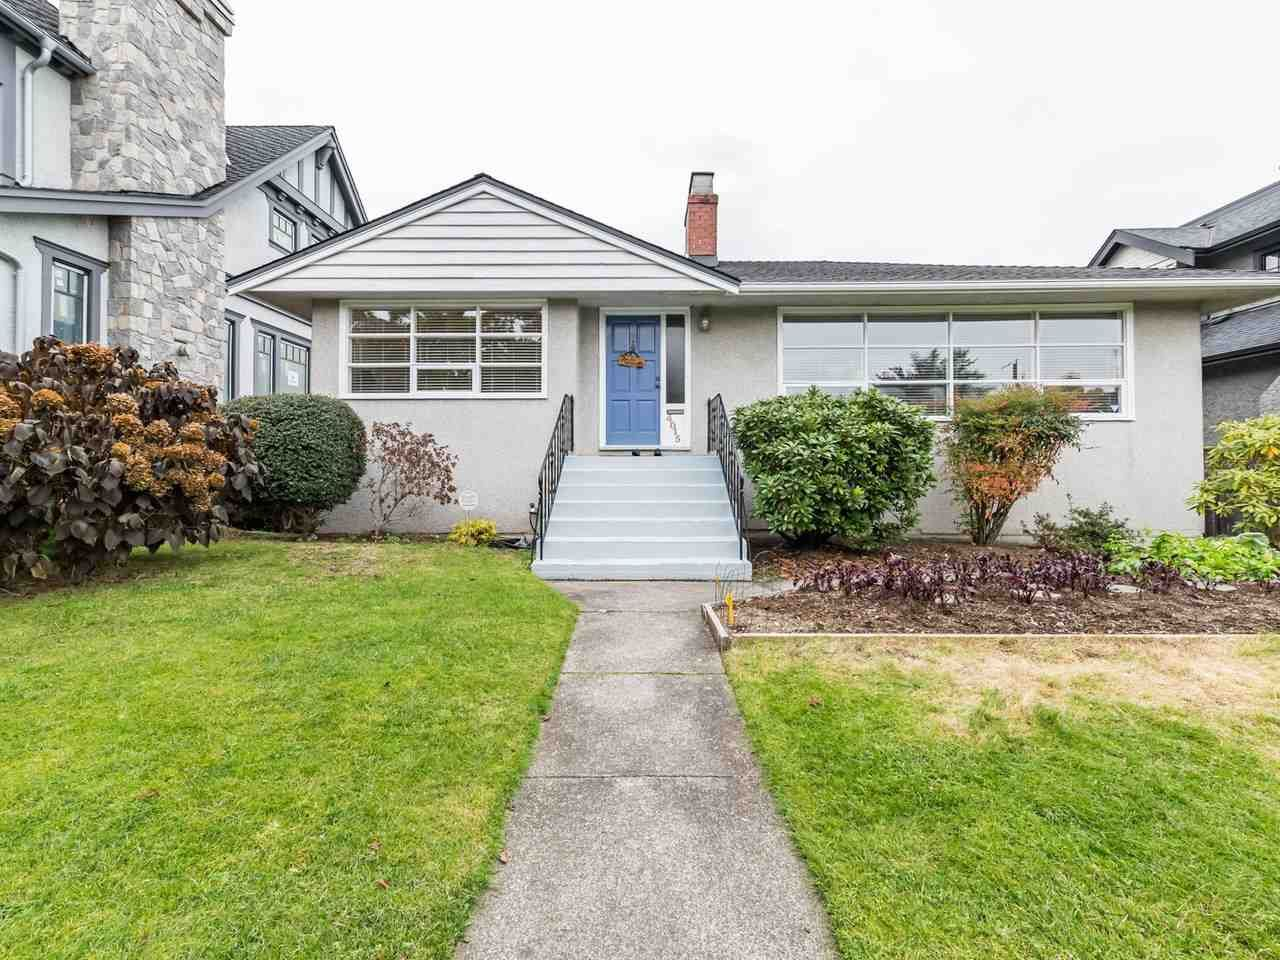 """Main Photo: 4015 W 28TH Avenue in Vancouver: Dunbar House for sale in """"DUNBAR"""" (Vancouver West)  : MLS®# R2571774"""